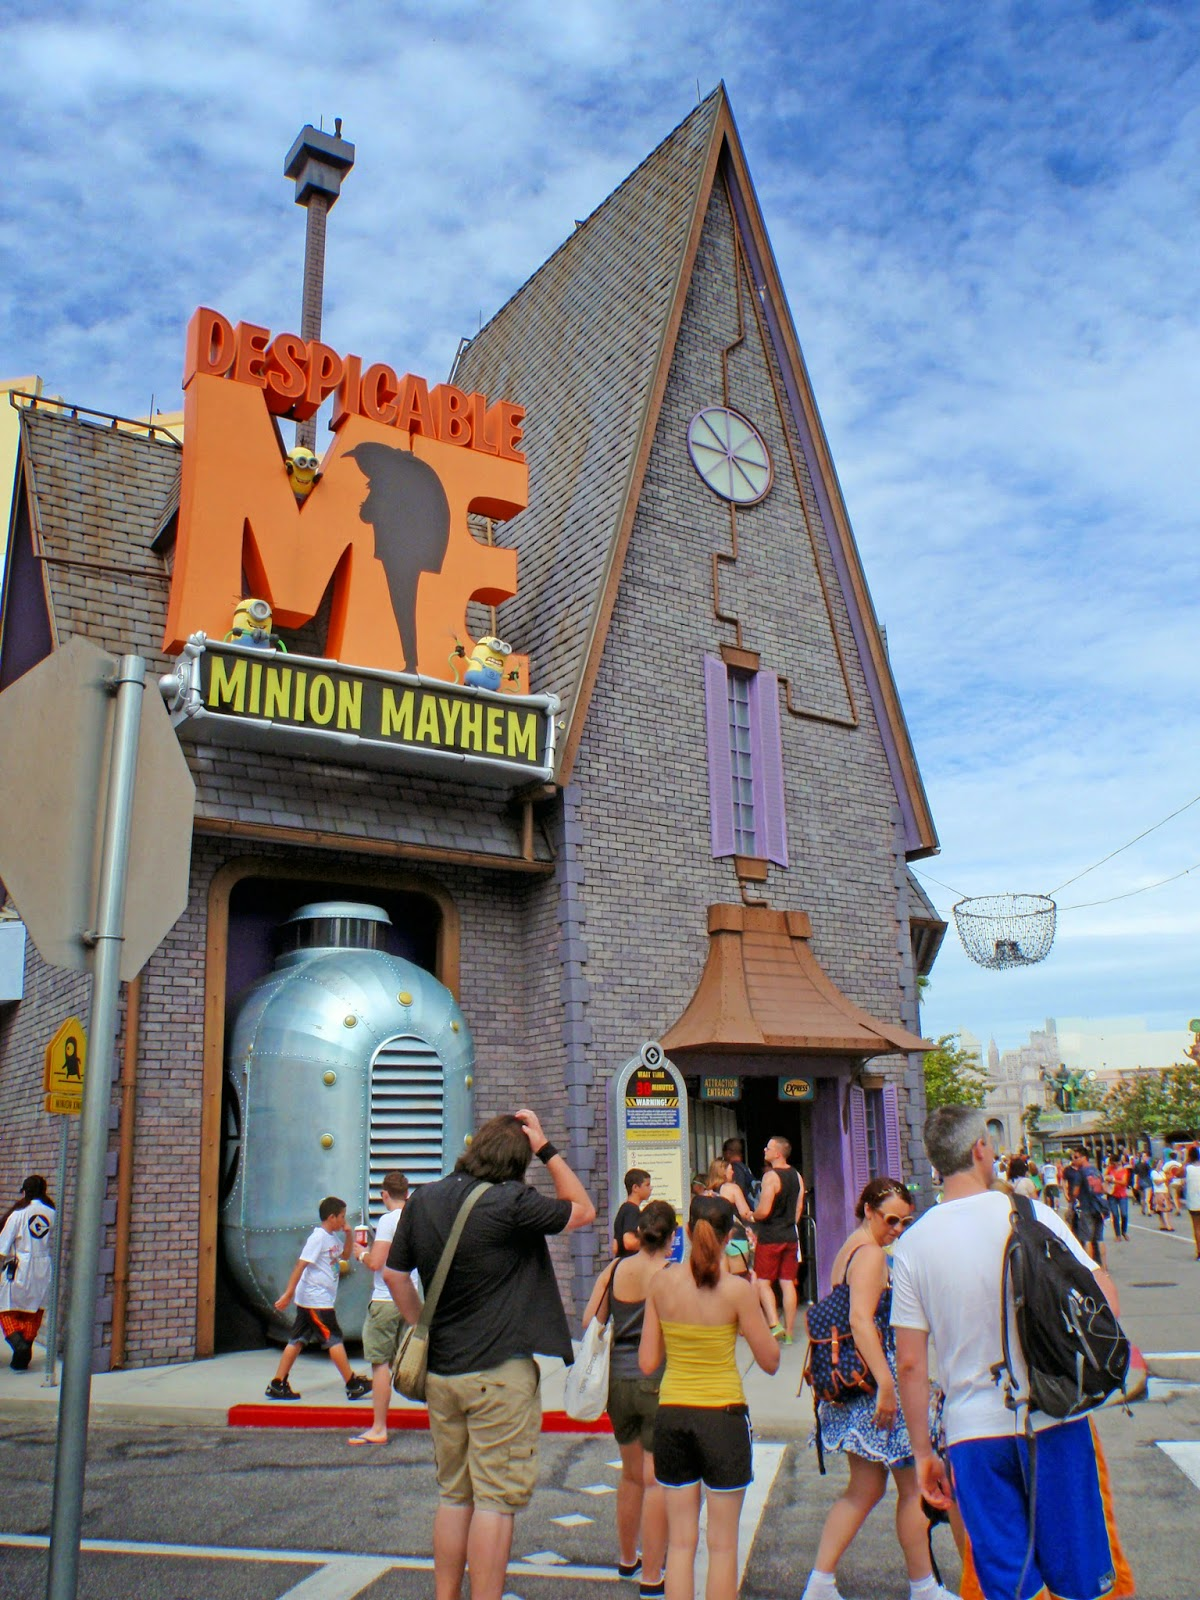 The obligatory blog universal studios orlando we saved the world how to train your dragon attraction my favorite ride at universal studios non harry potter related was transformers its a 4d immersive motion ccuart Gallery